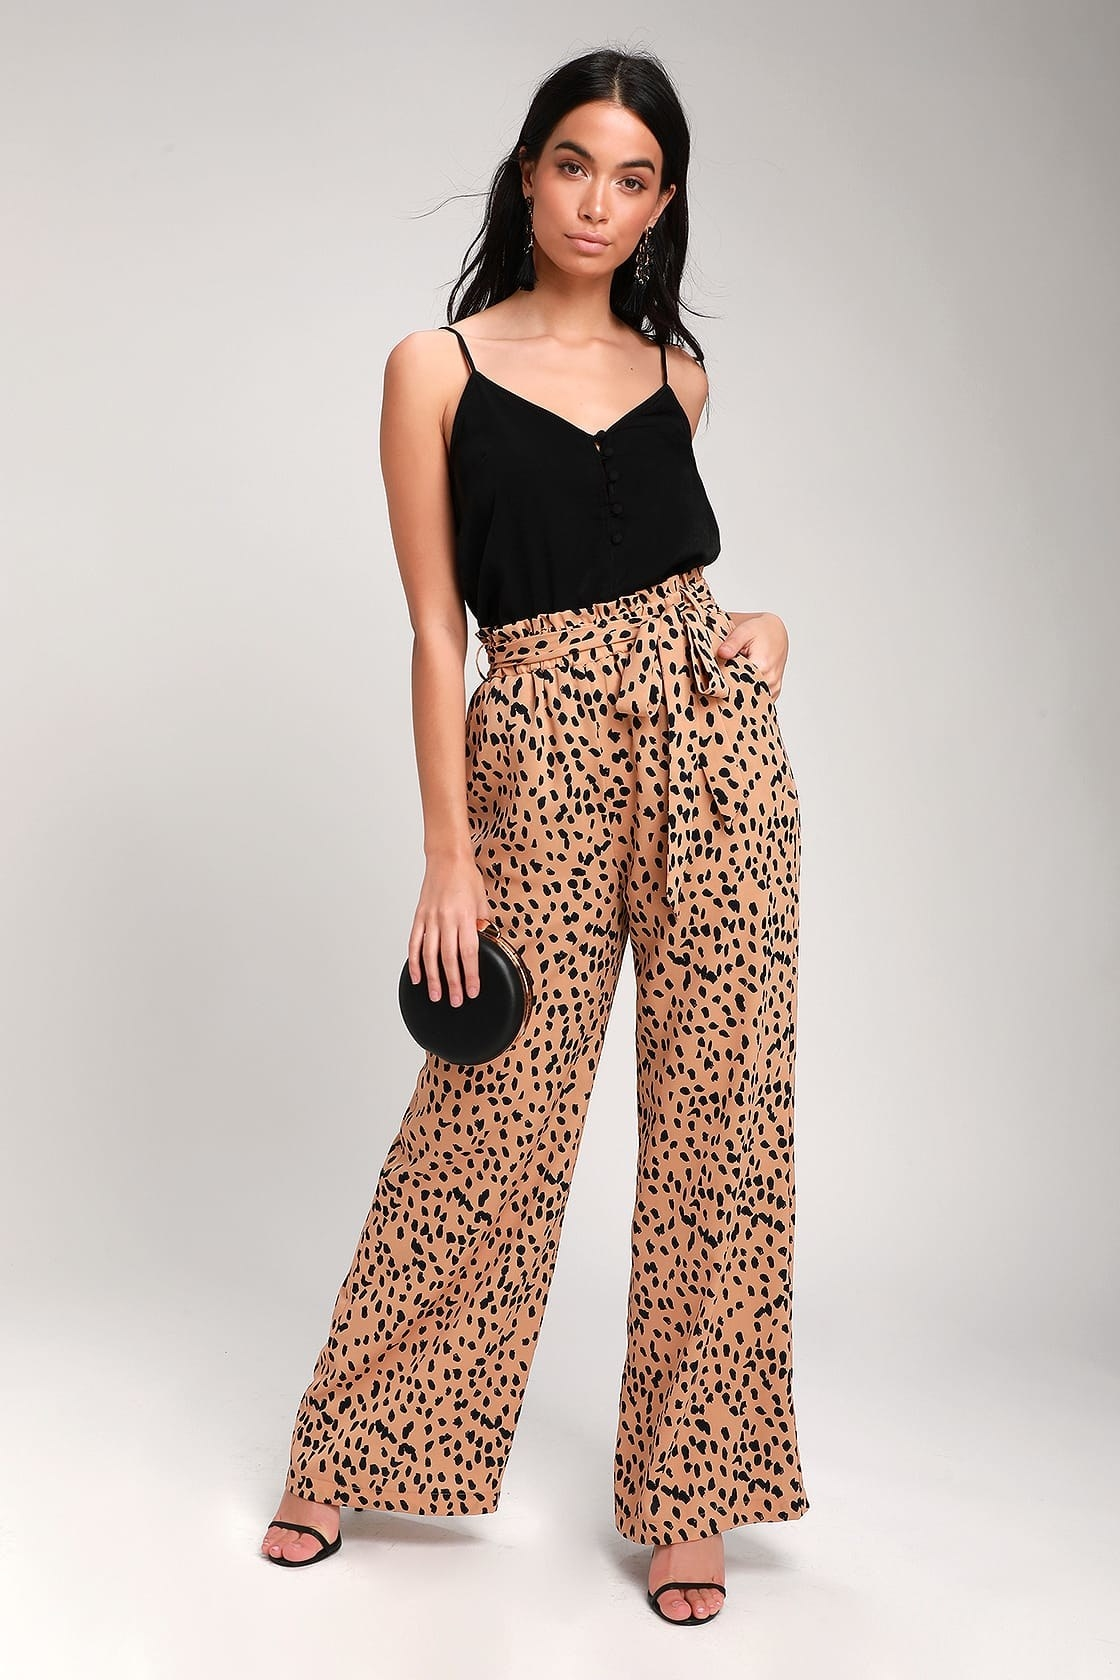 Model wearing wide-leg leopard print pants with a paper-bag waist, tie sash, and pockets